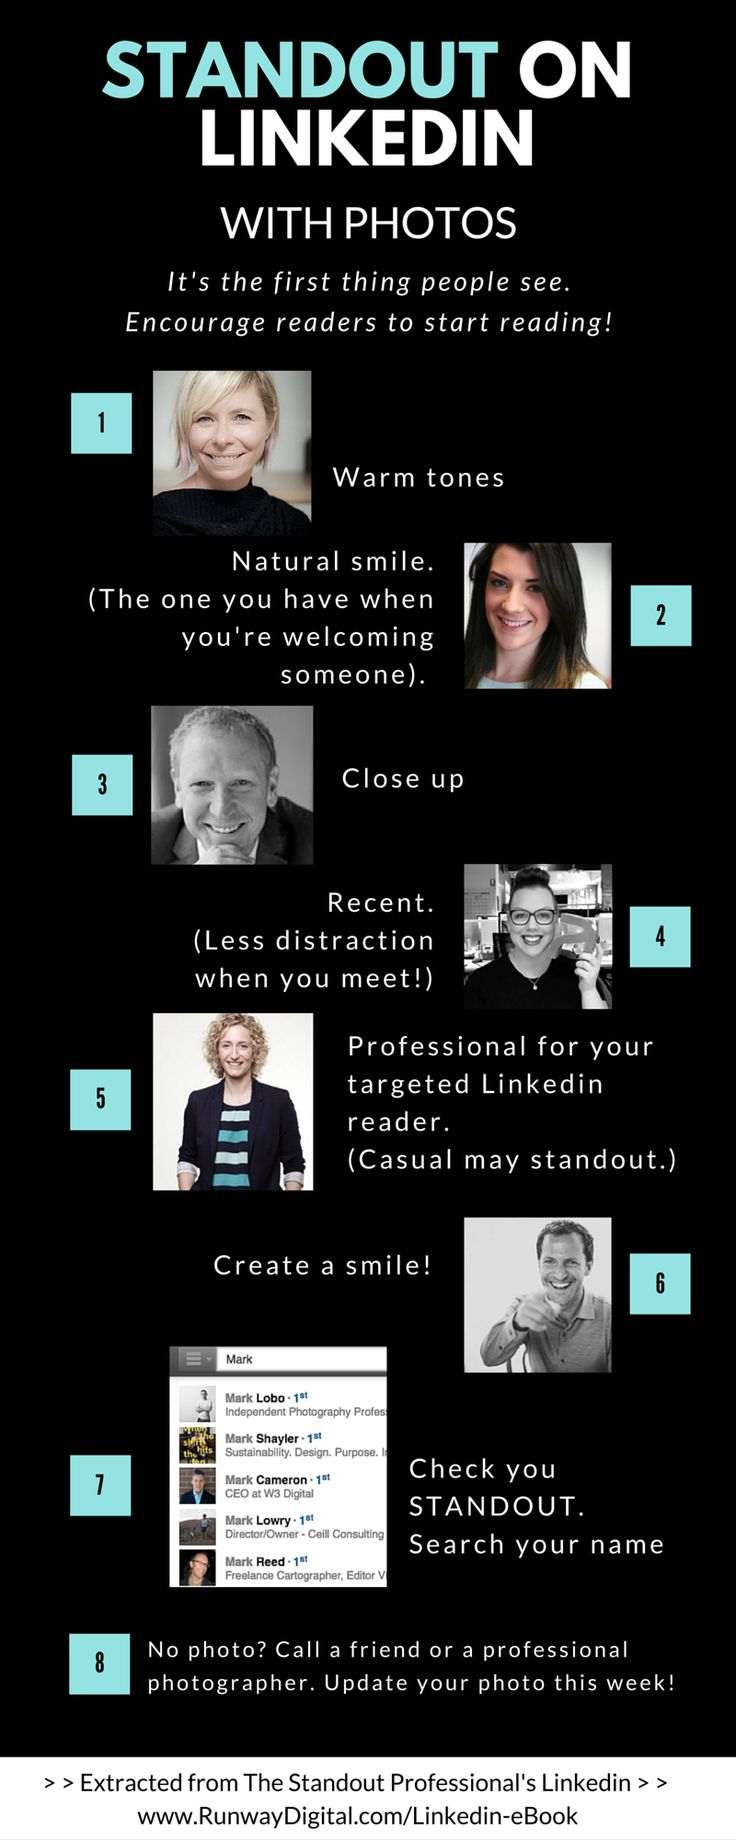 """If people like your photo or feel engaged with your Linkedin profile, they'll read on, contact you, click...."" [new post] What makes a perfect Linkedin profile photo? #personalbranding #personalbrand #linkedin #linkedinphoto #onlinestyle"